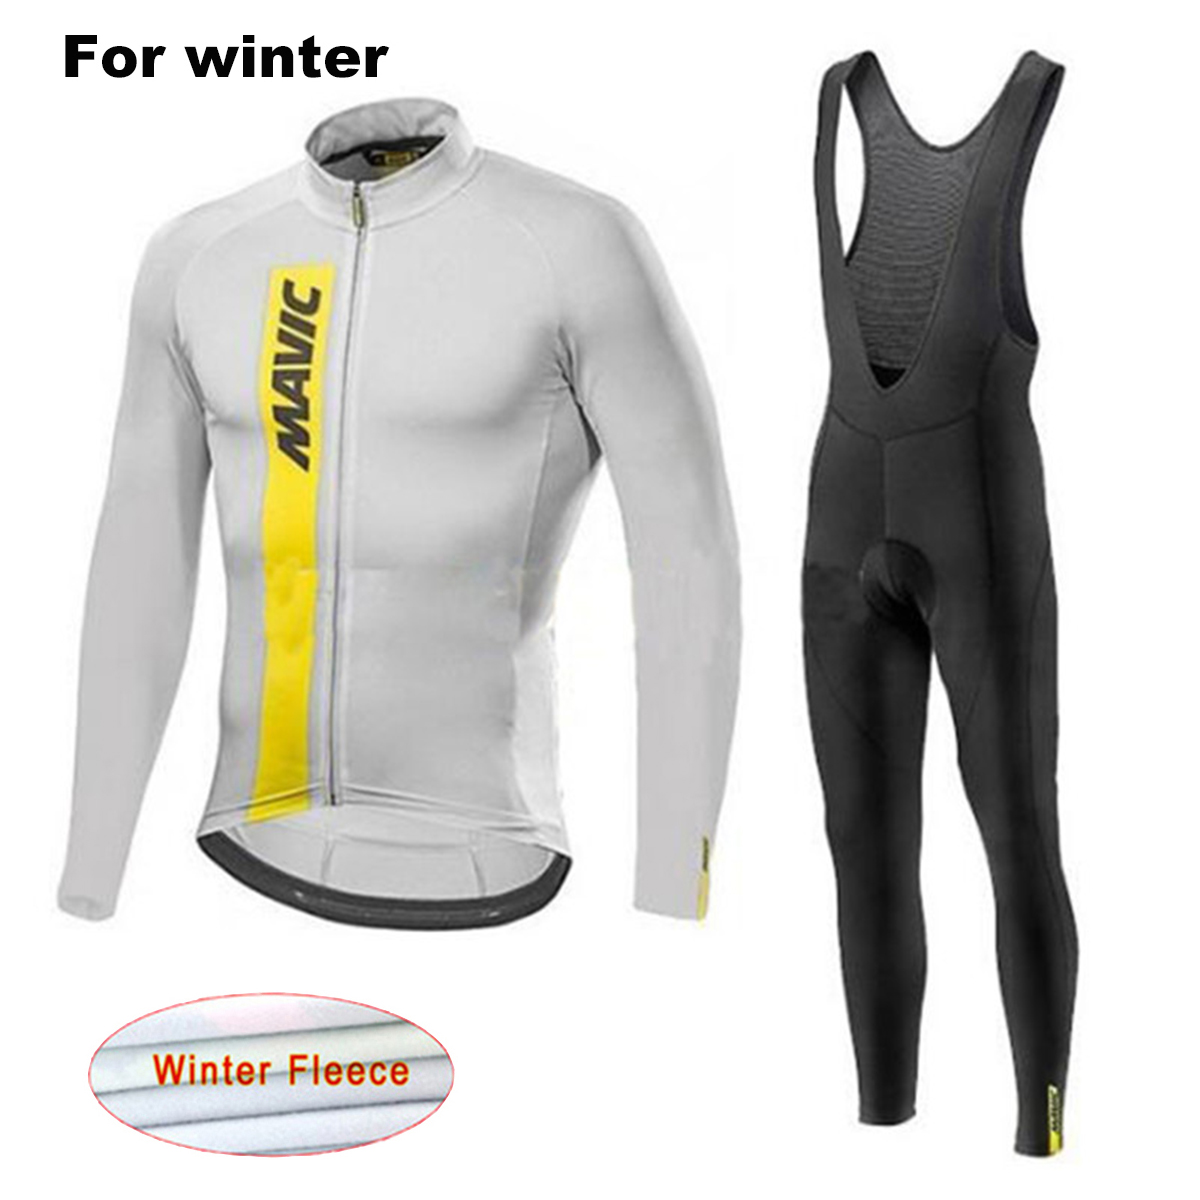 MAVIC 2017 Winter Warm Bicycle Clothing Cycling Jerseys Set New Men`s Thermal Fleece Team MTB Bike Clothes Ropa Maillot Ciclismo 2017 new high grade cycling coat windproof bike bicycle clothing men